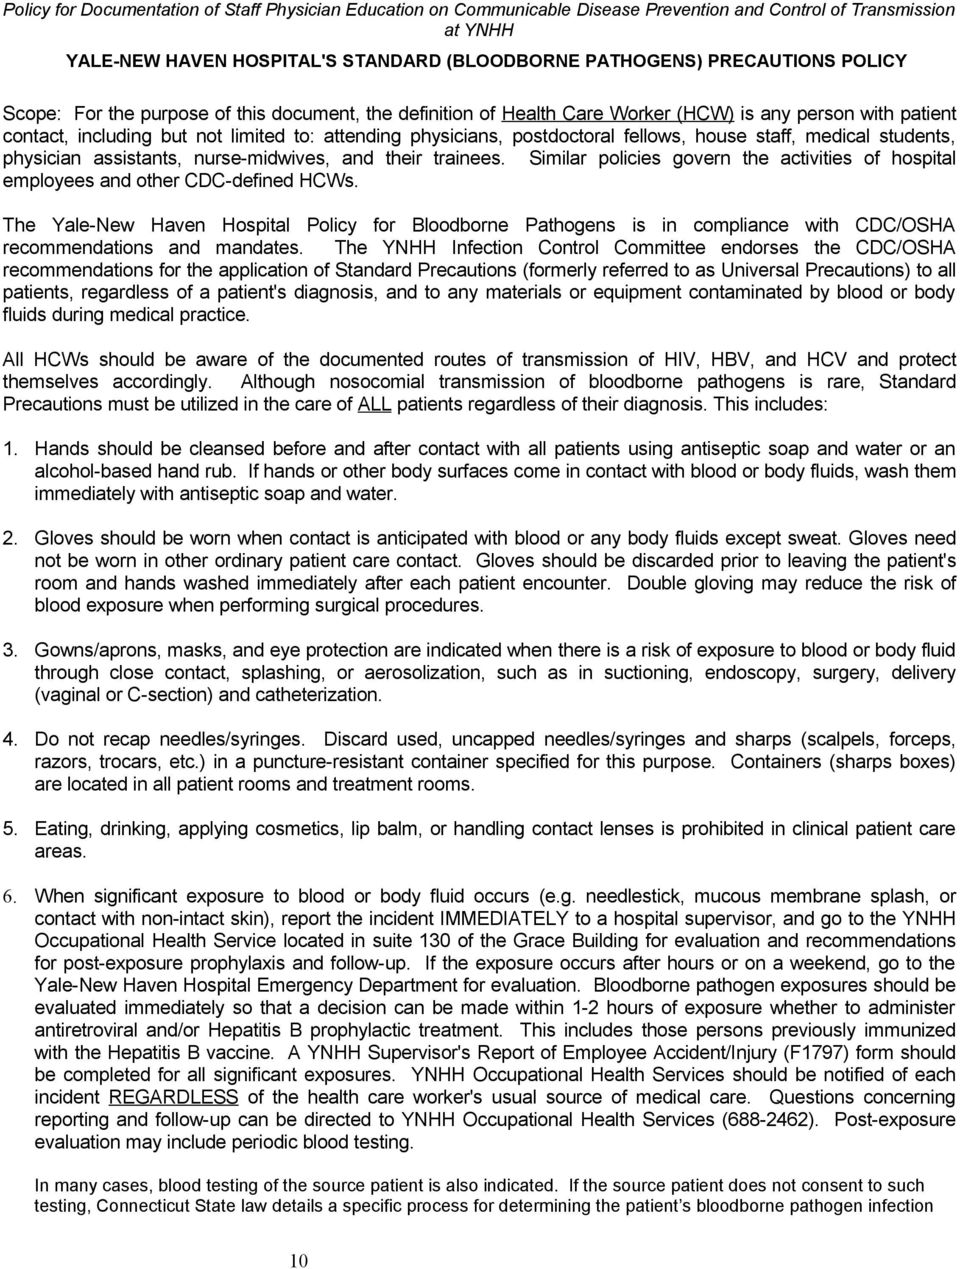 Yale-New Haven Hospital Application for Physician Guests - PDF